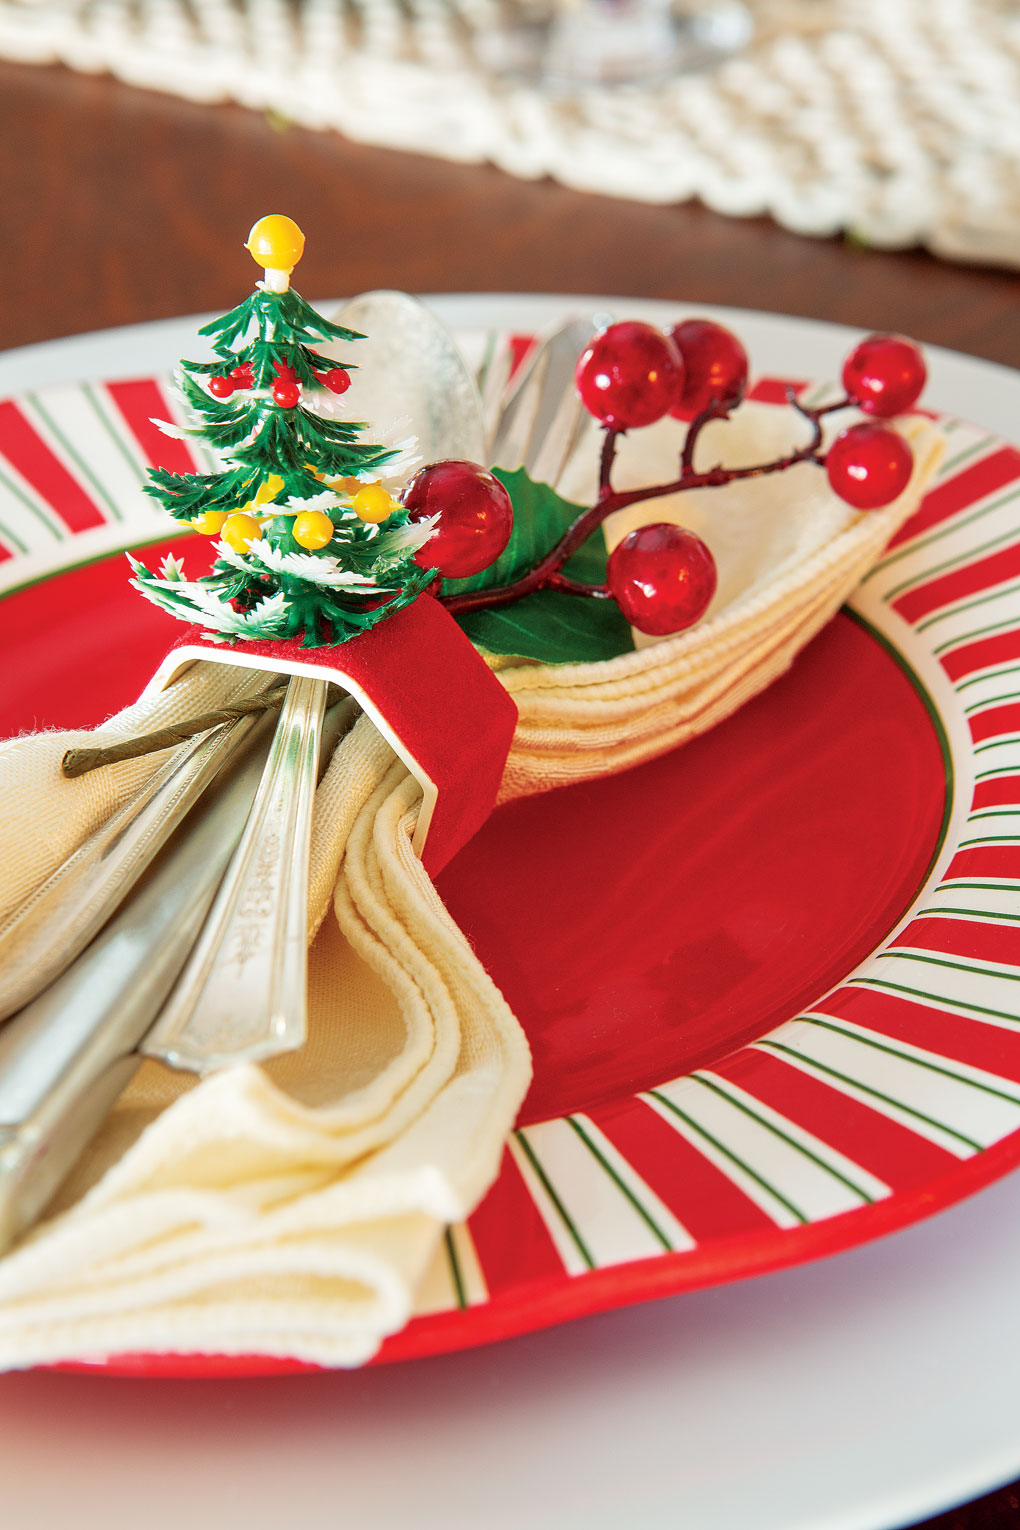 Holiday dinner place setting topped with a cream napkin and vintage napkin ring topped with a Christmas tree.